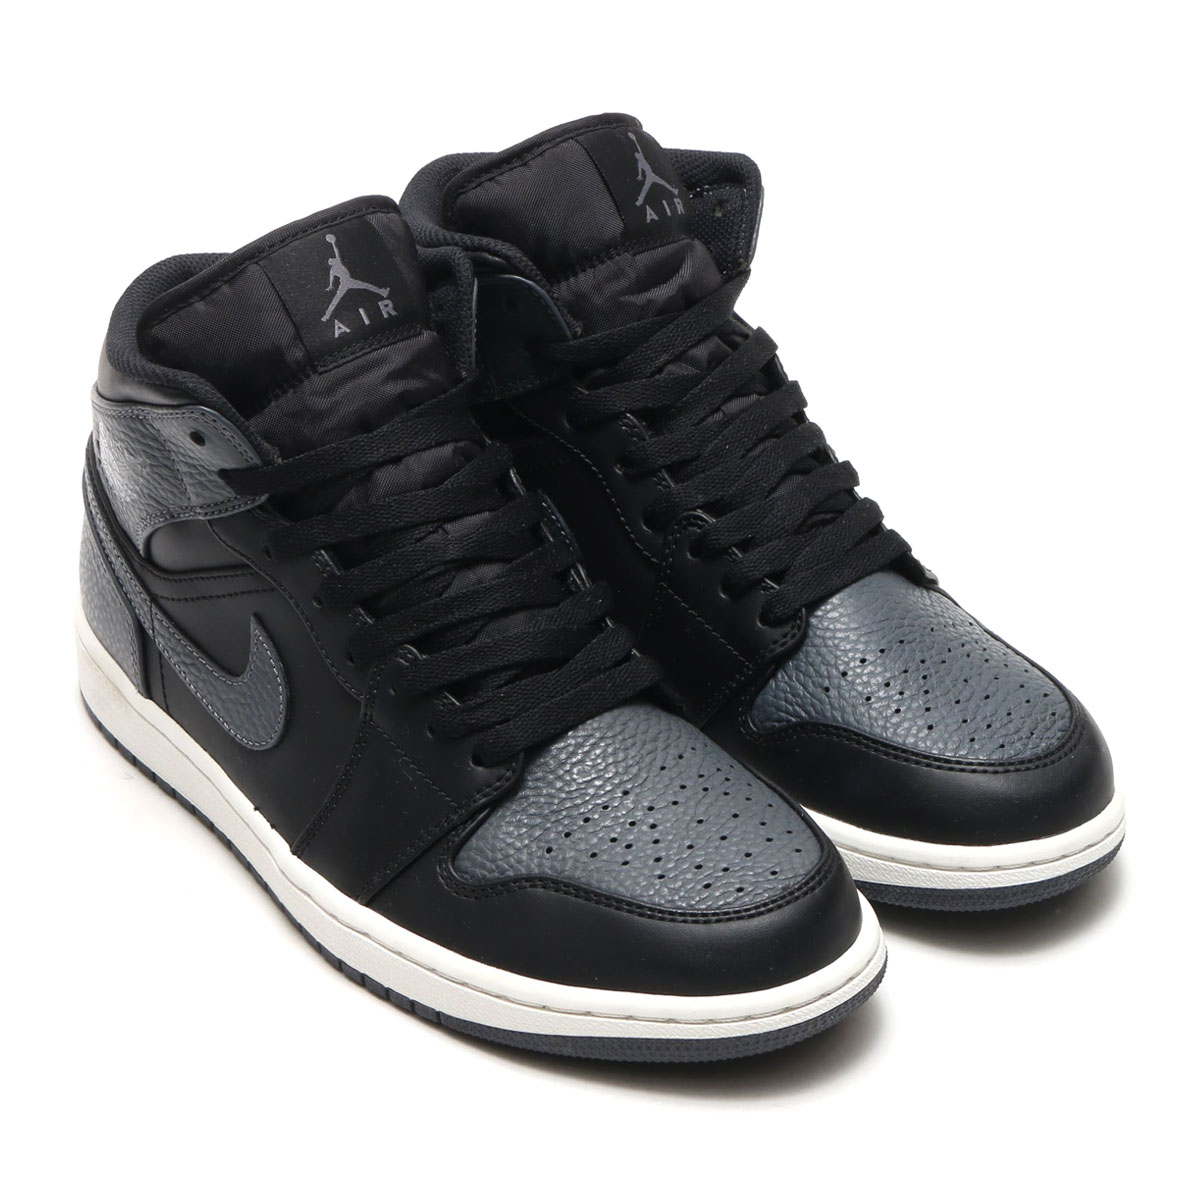 c46ee957bbbf MID cut version of Air Jordan 1 who it was first sig nature shoes of Michael  Jordan